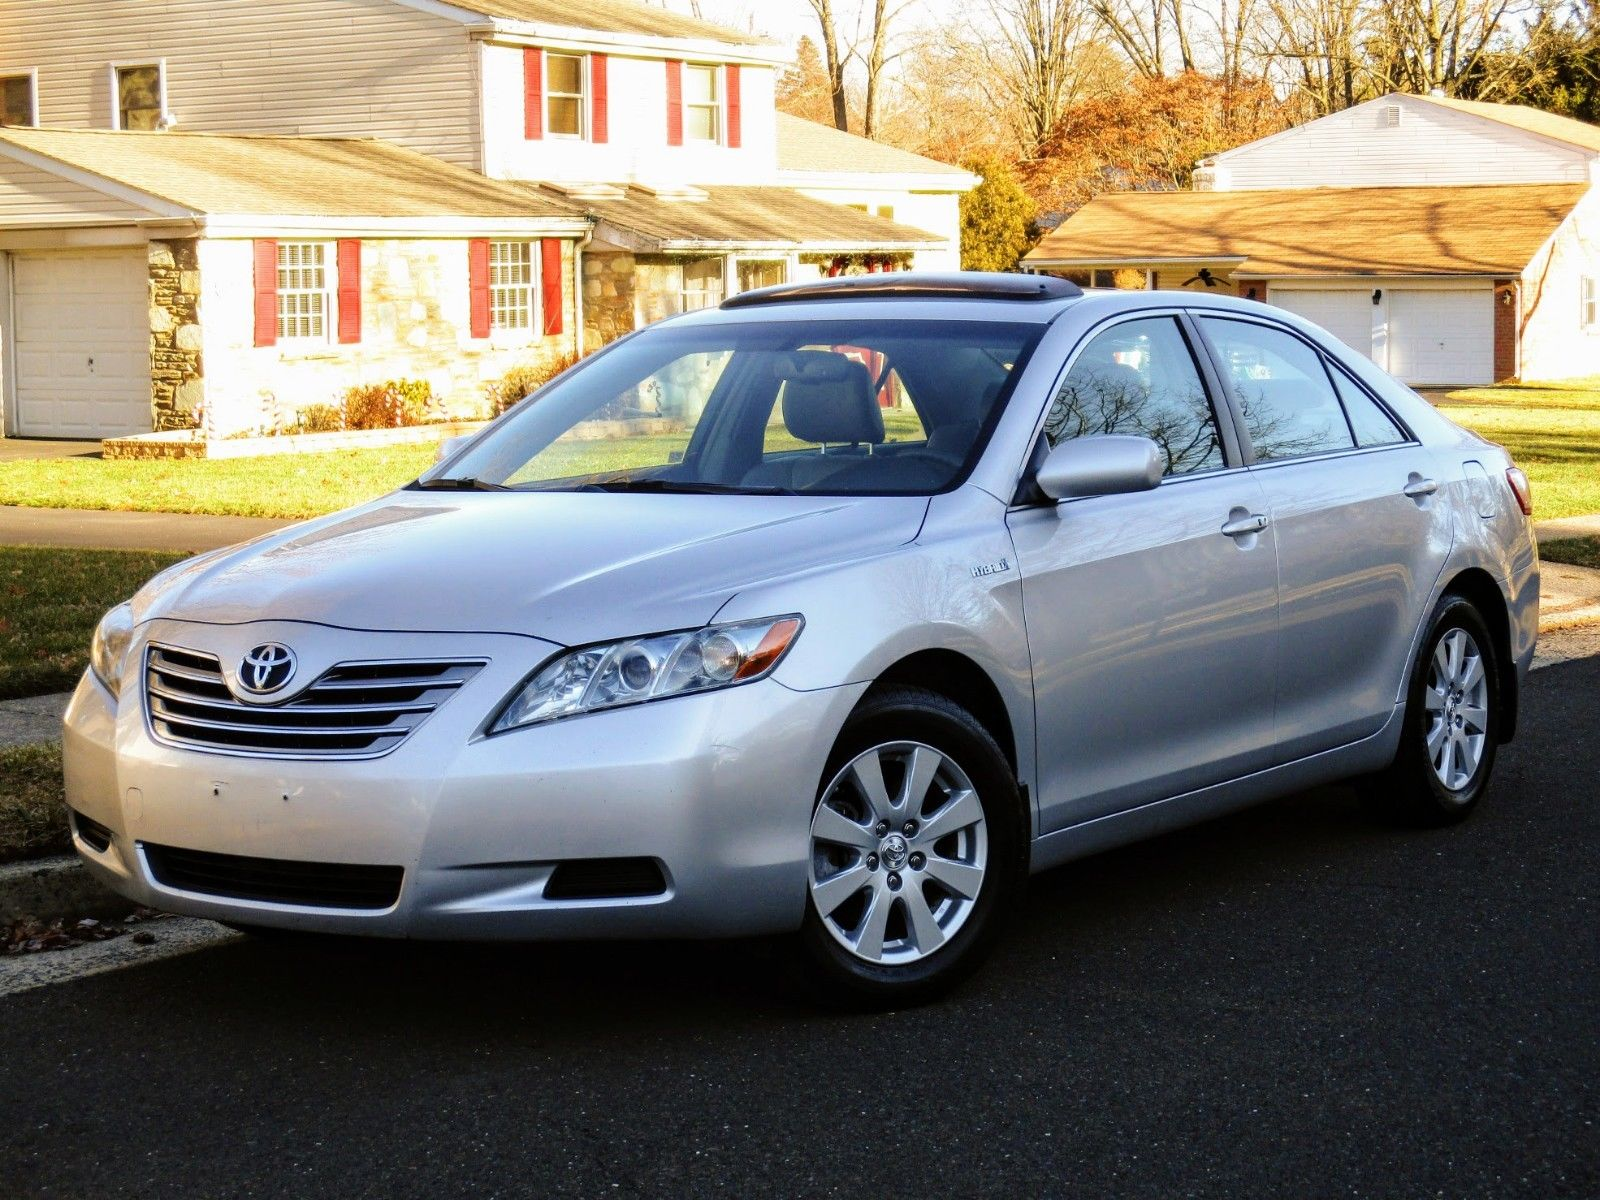 Amazing 2009 Toyota Camry Hybrid No Reserve Clean Carfax 34 Mpg Leather Navigation Bluetooth Smart Key Sdn 2018 2019